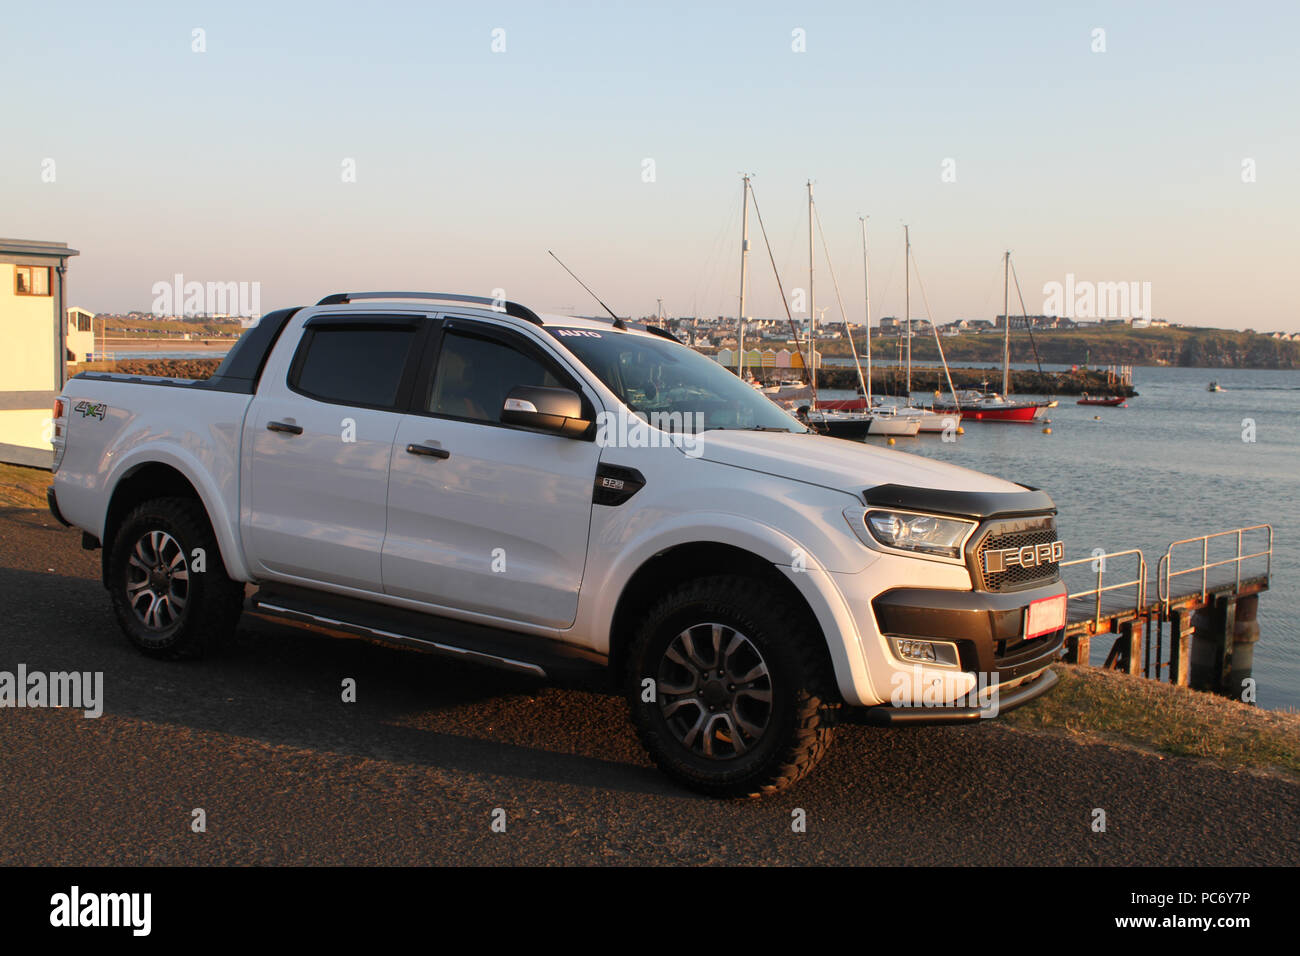 Ford Ranger at Portrush Harbour - Stock Image